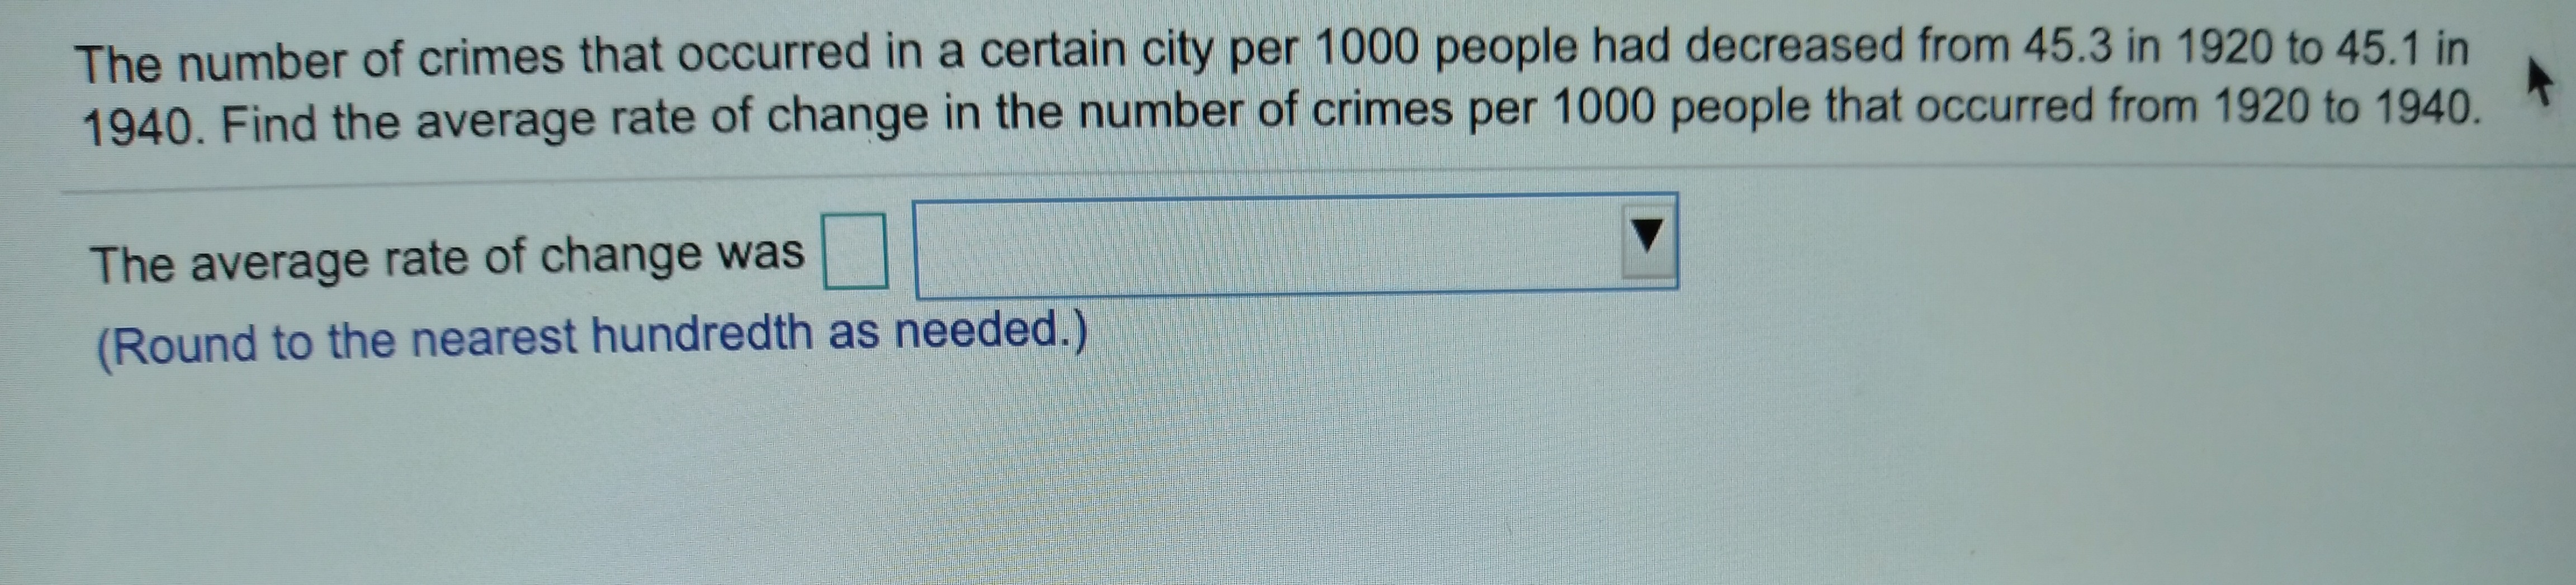 The number of crimes that occurred in a certain city per 1000 people had decreased from 45.3 in 1920 to 45.1 in 1940. Find the average rate of change in the number of crimes per 1000 people that occurred from 1920 to 1940. The average rate of change was (Round to the nearest hundredth as needed.)